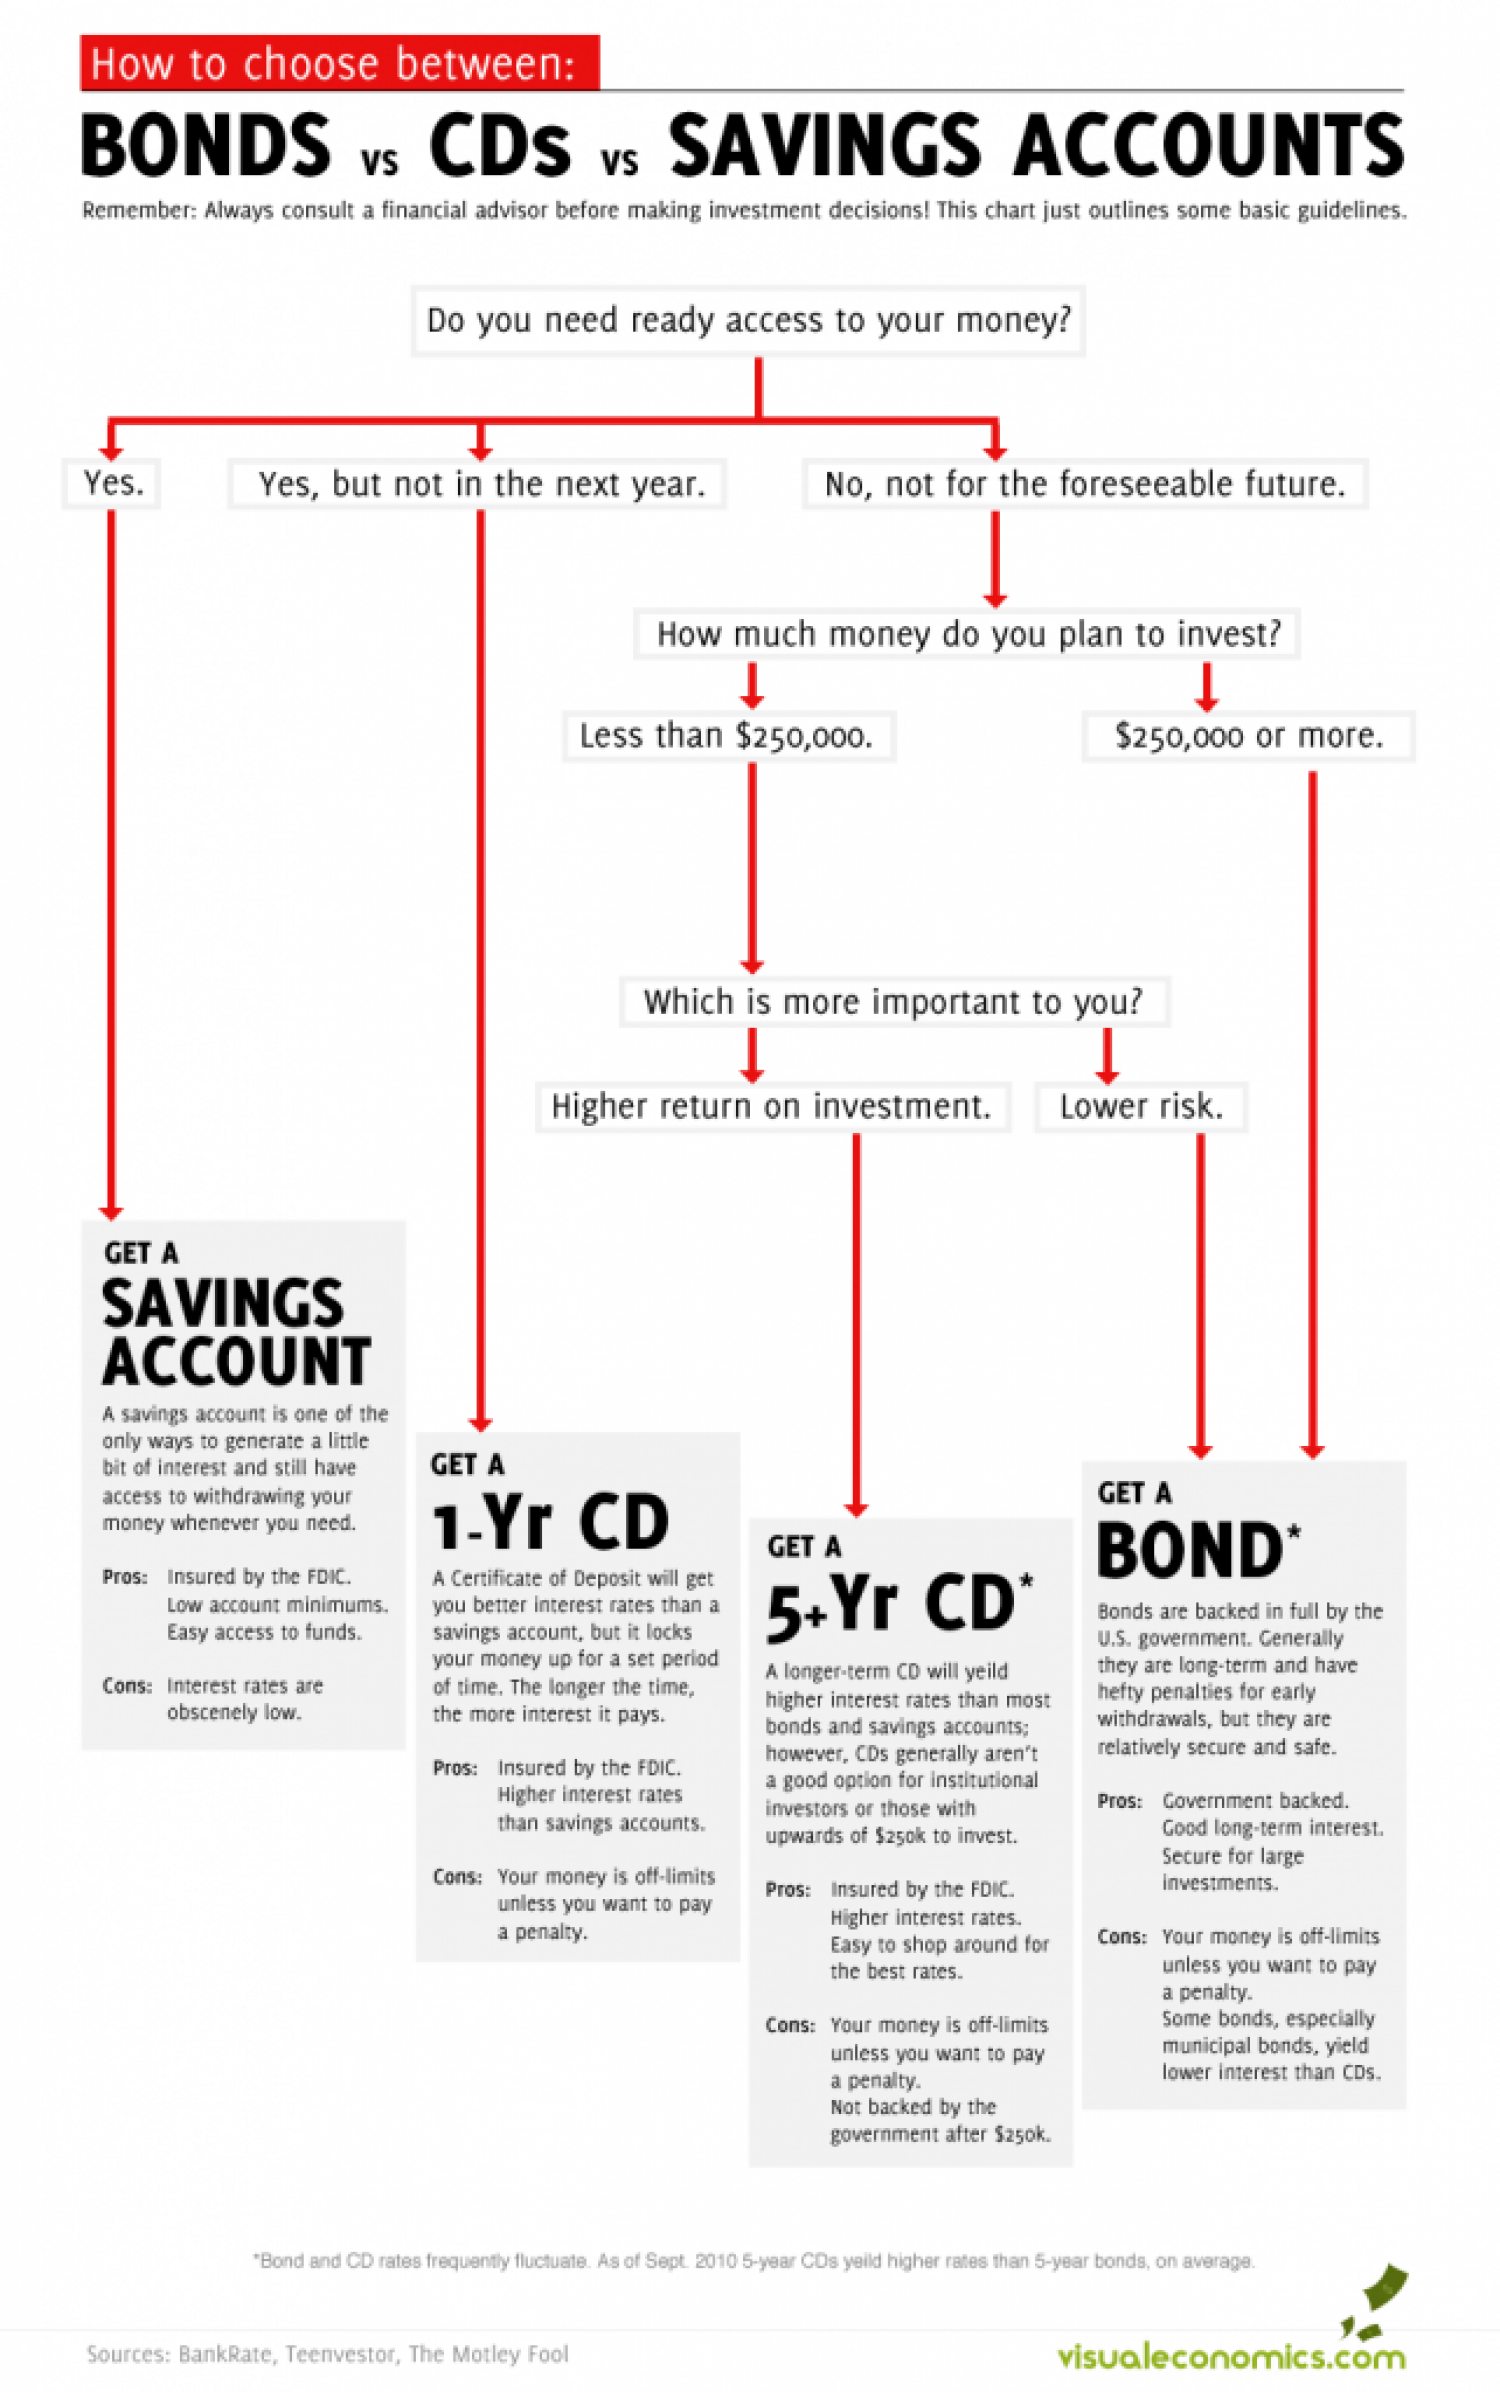 How To Choose Between Bonds Cds And Savings Accounts Visual